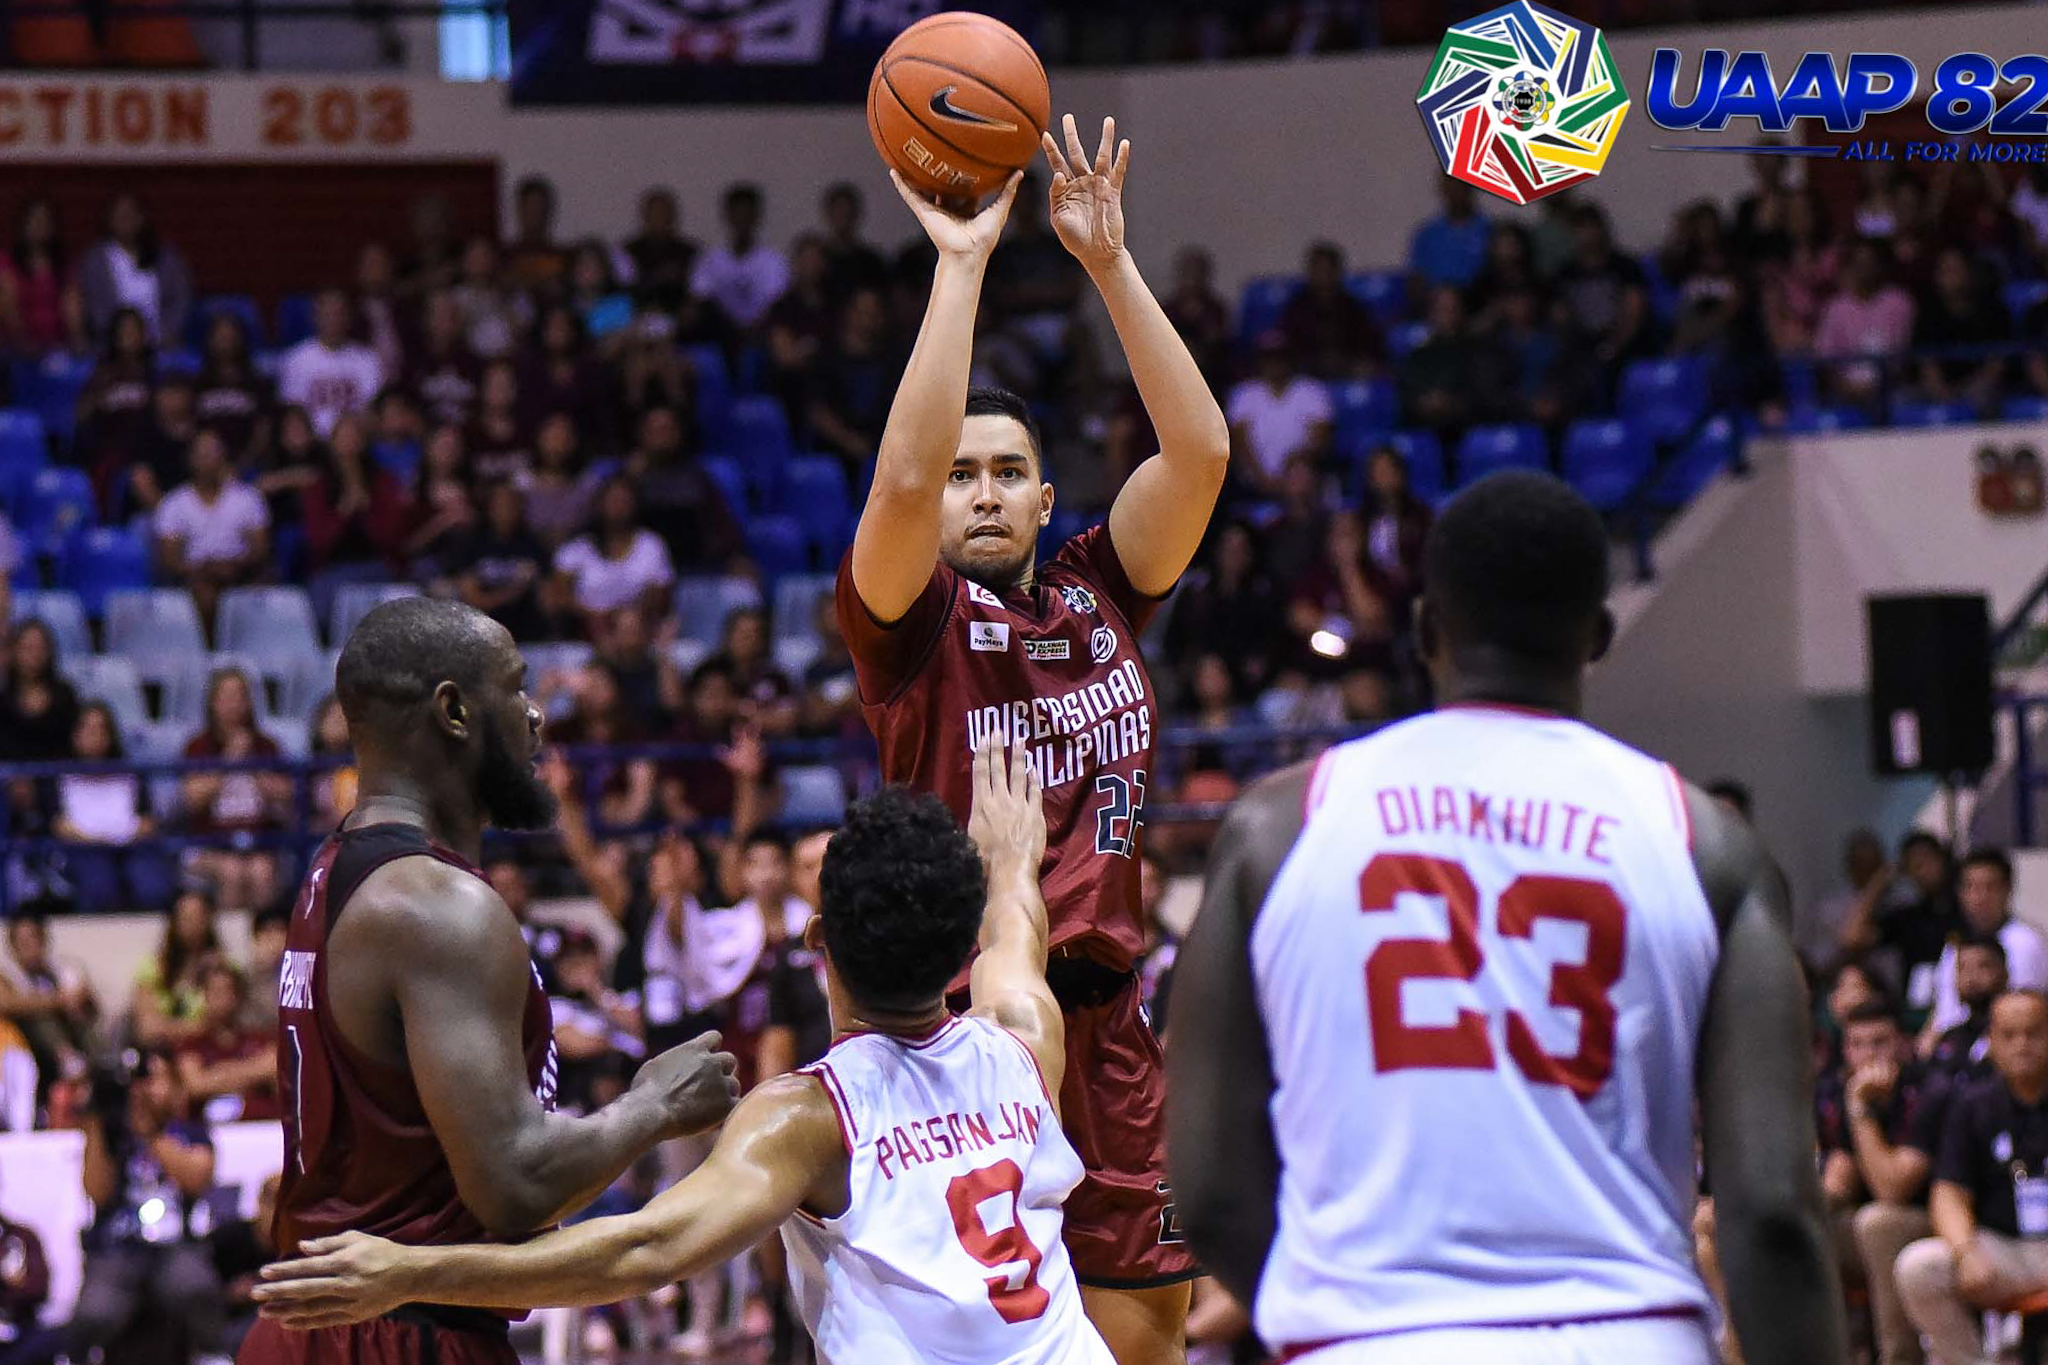 UP survives gritty UE to notch third straight victory